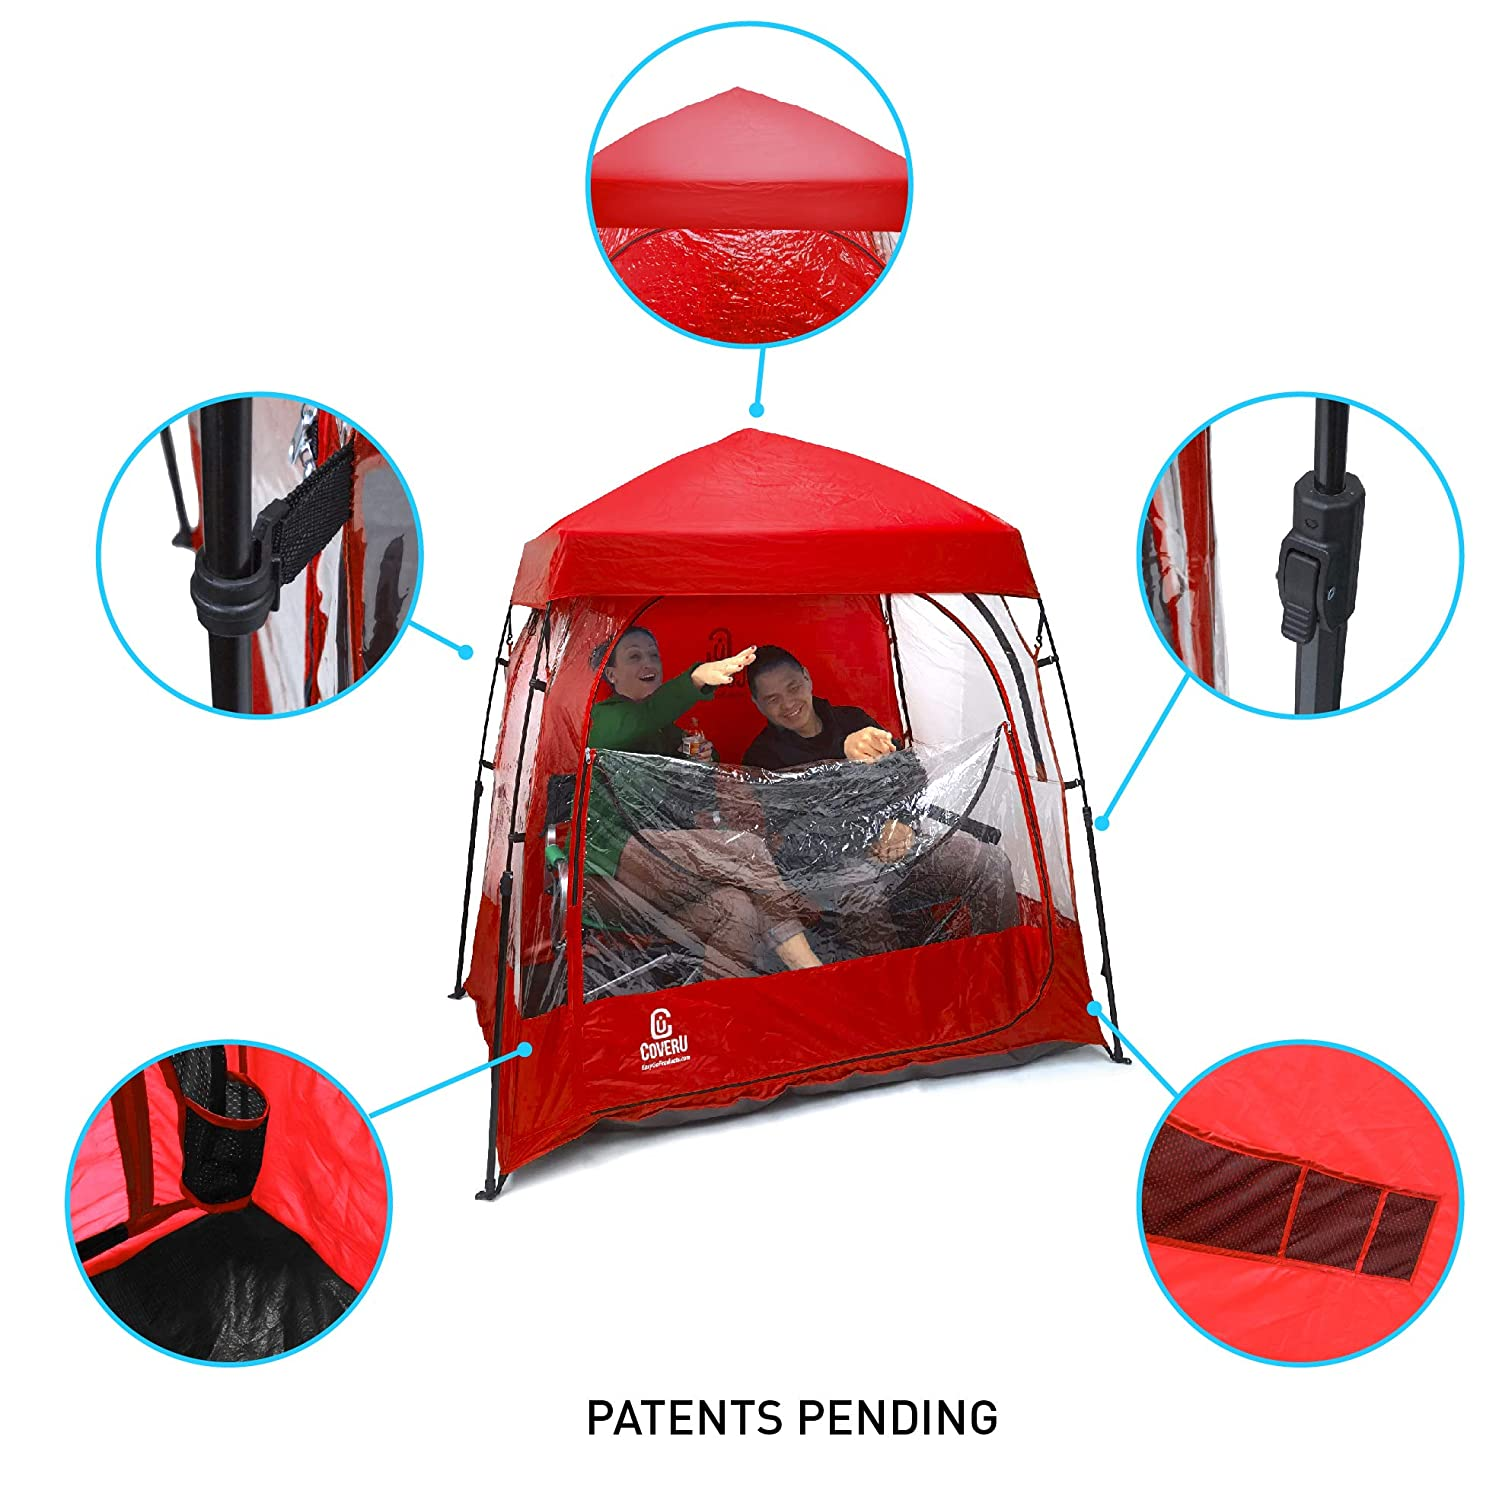 EasyGO CoverU Sports Shelter u2013 Fits 1 or 2 Person Weather Tent and Sports Pod (RED)u2013 Patents Pending - Hiking - World for all Backpacker | Hiker | Outdoor ...  sc 1 st  Hiking BNA & EasyGO CoverU Sports Shelter u2013 Fits 1 or 2 Person Weather Tent and ...